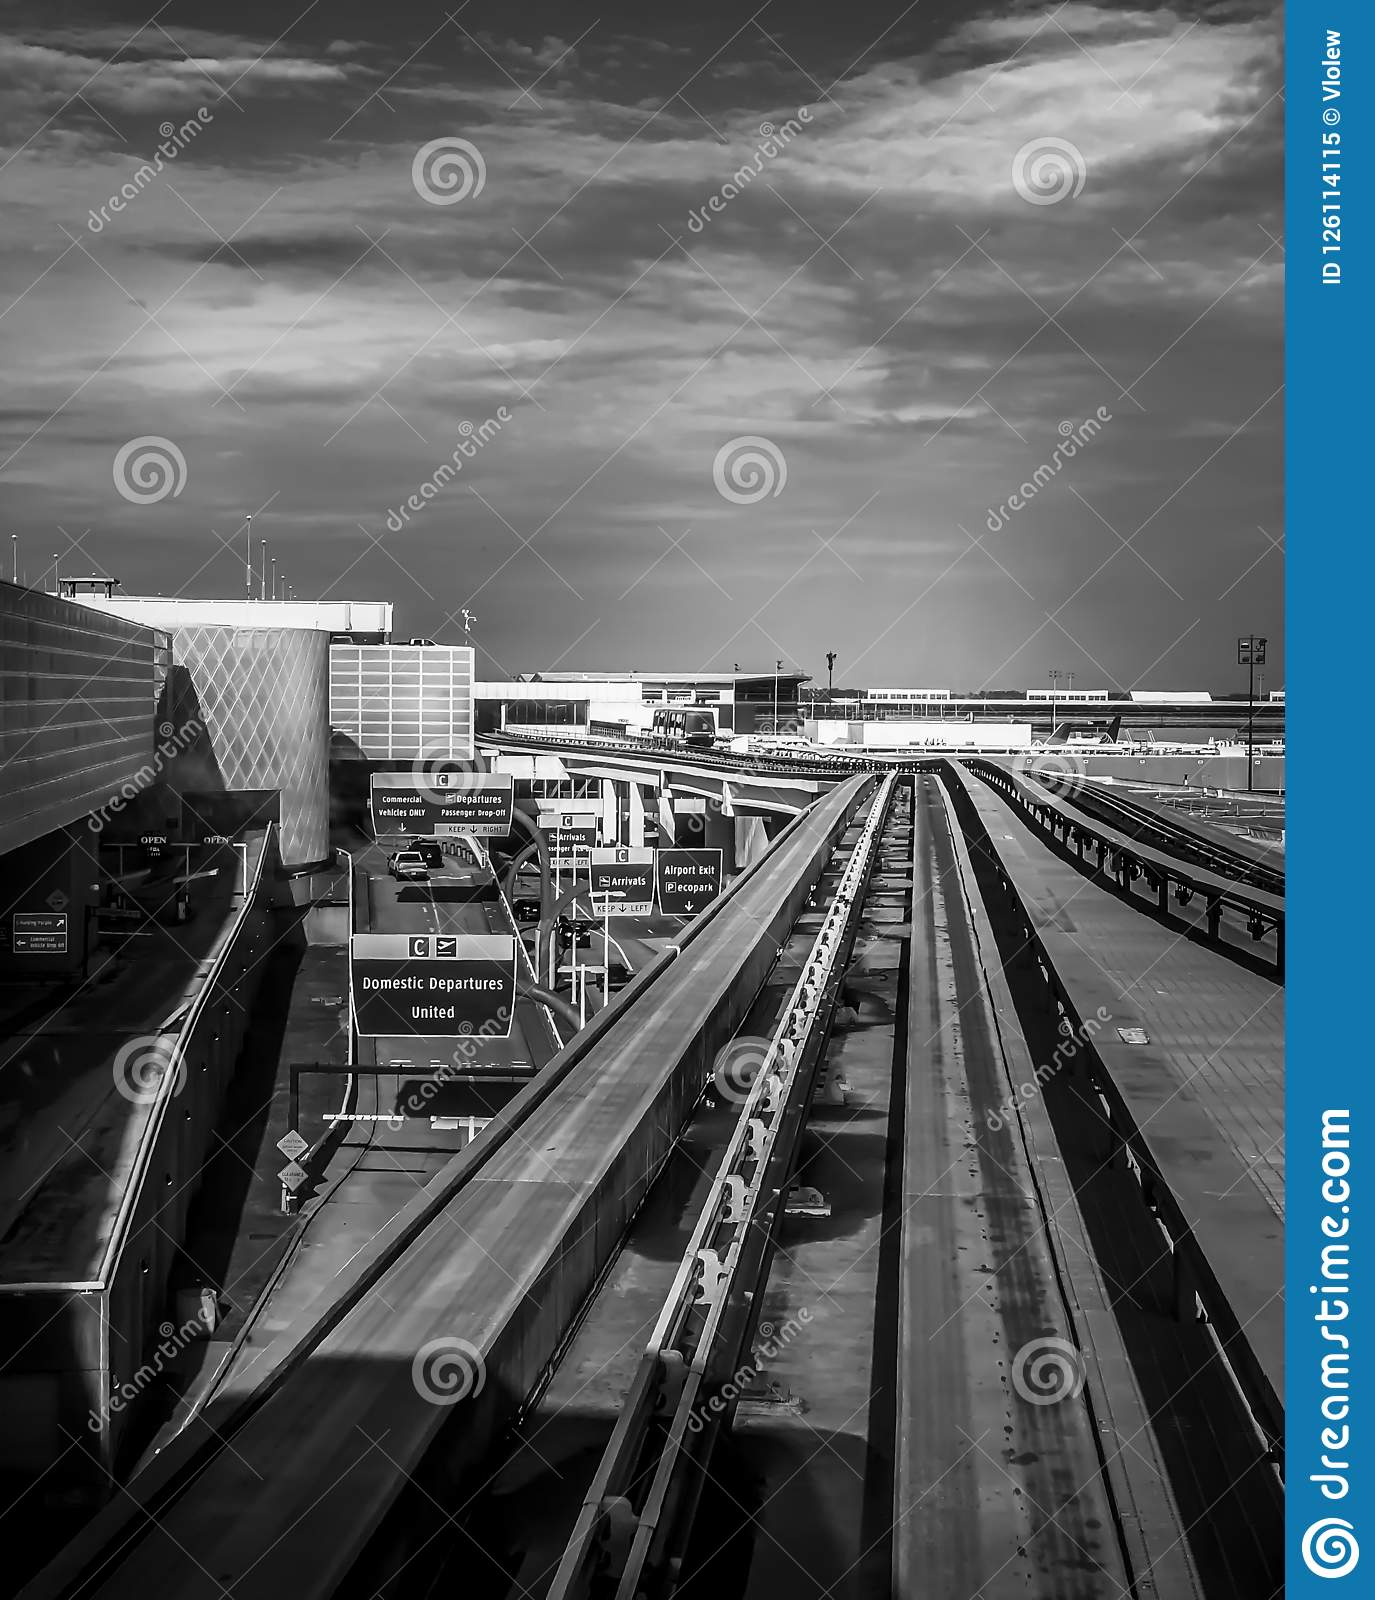 George Bush International Airport In Houston Stock Image Image Of